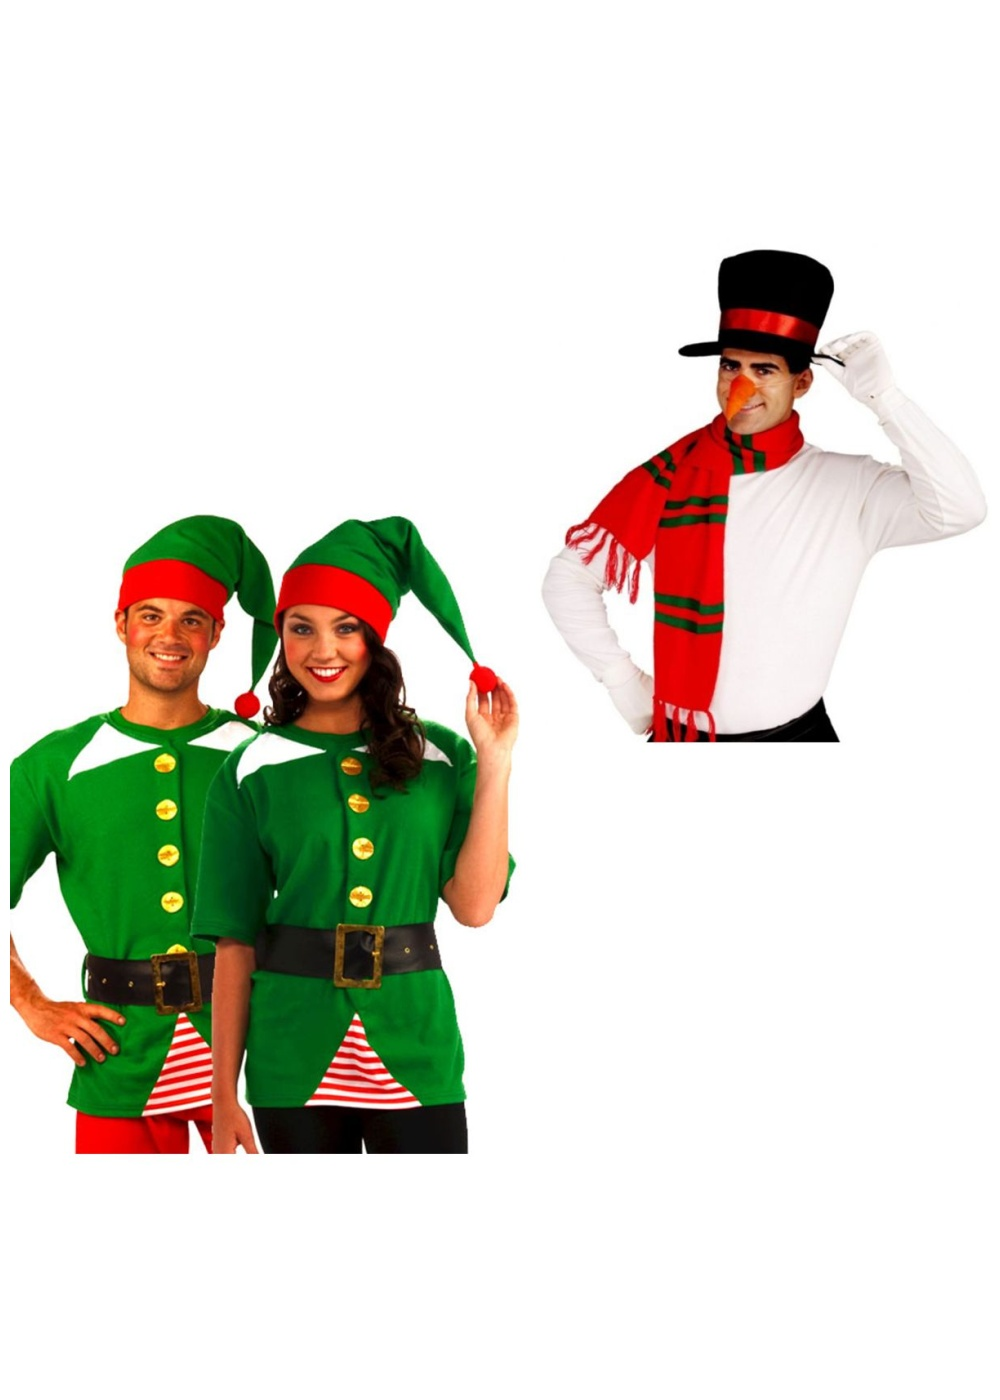 Adult costumes women costumes snowman and jolly elf costume